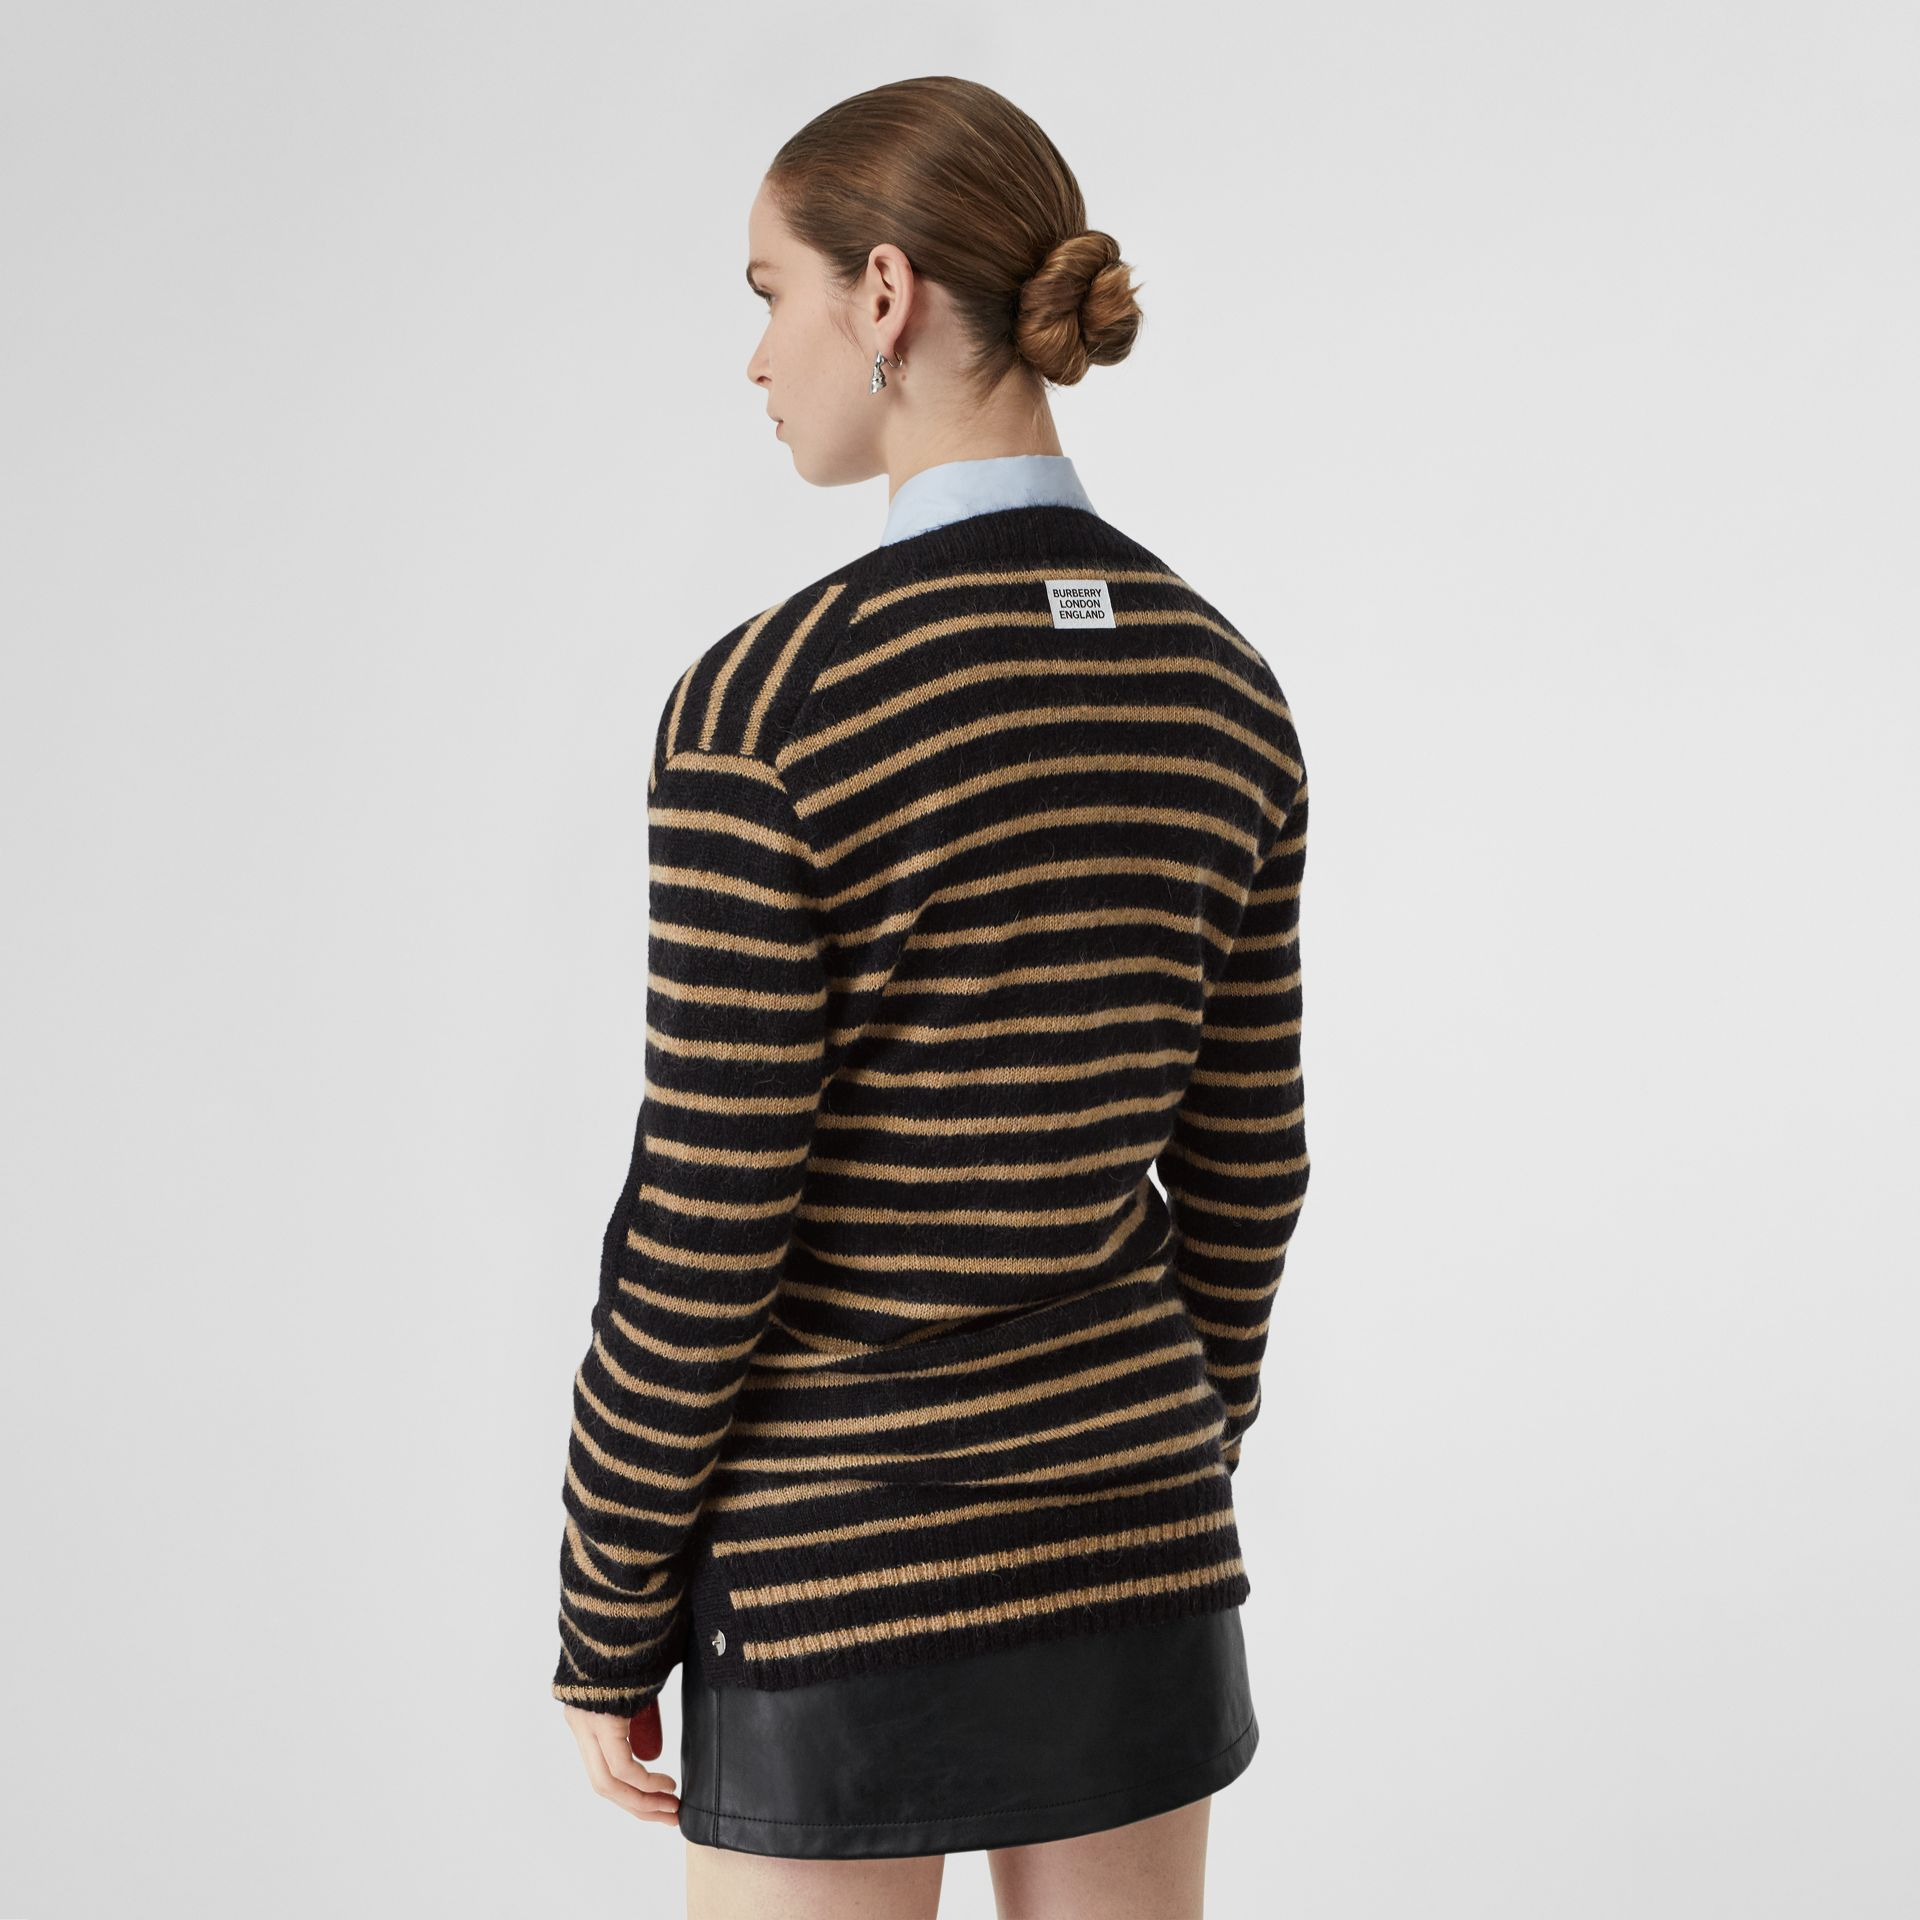 Montage Print Striped Mohair Wool Blend Sweater in Black/honey - Women | Burberry - gallery image 2